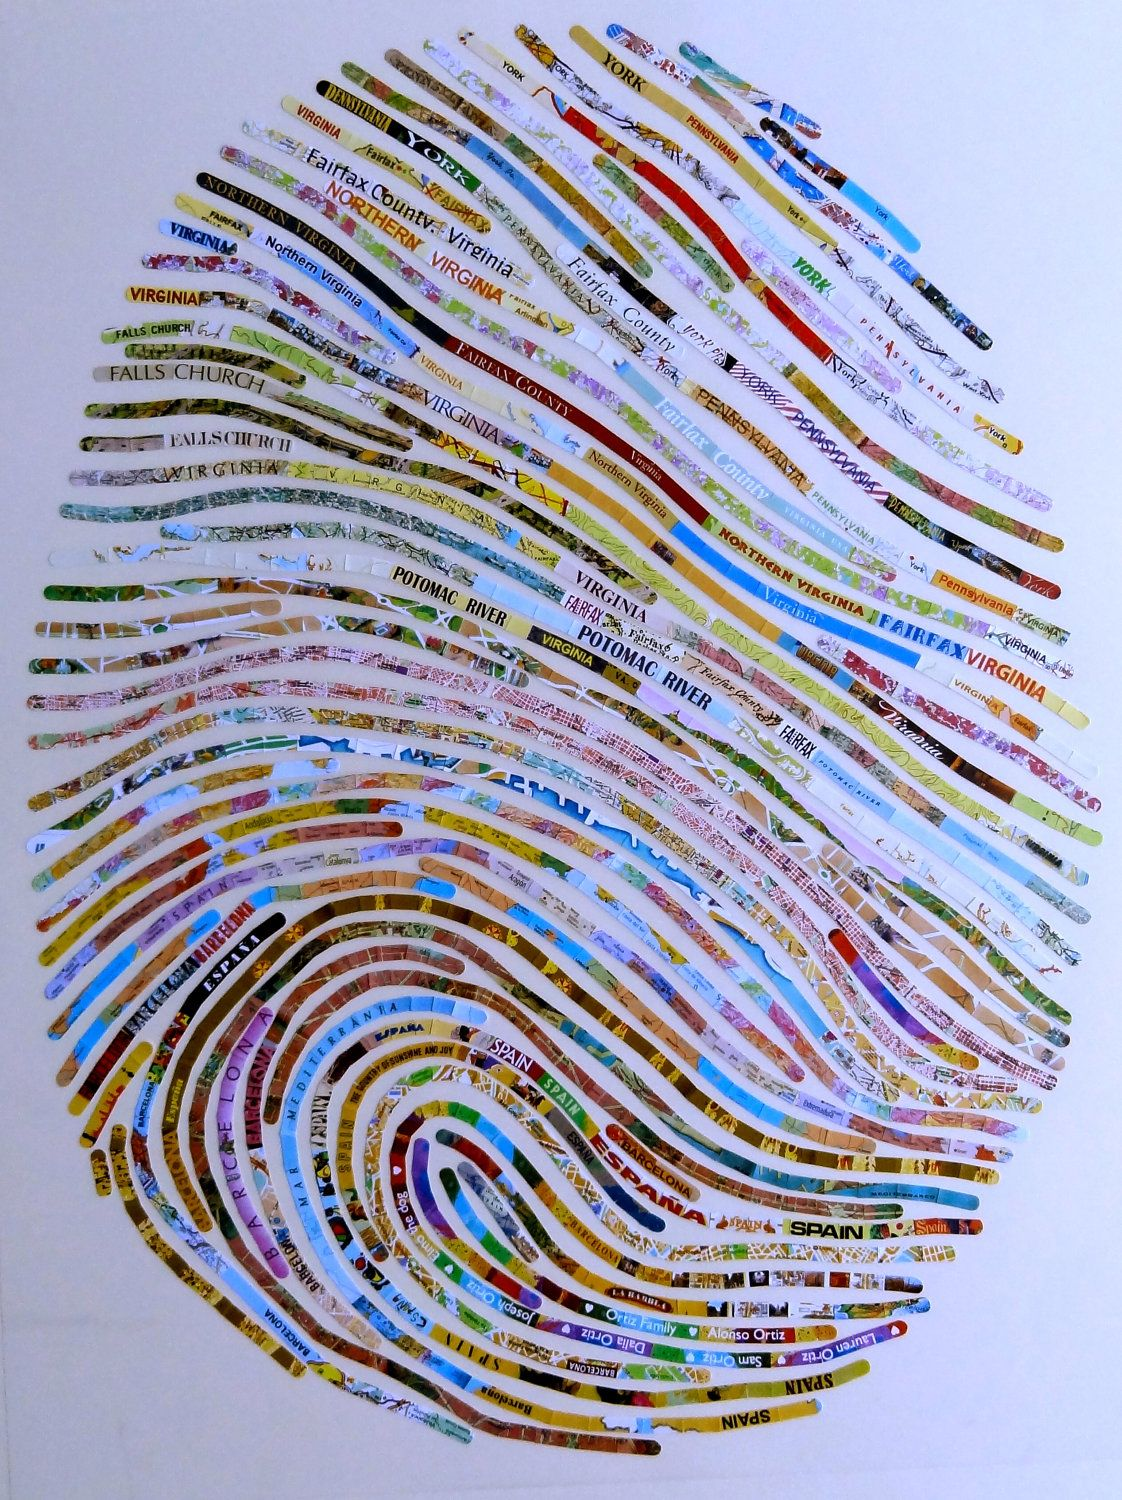 Giant Fingerprint art that is customized to the person ...